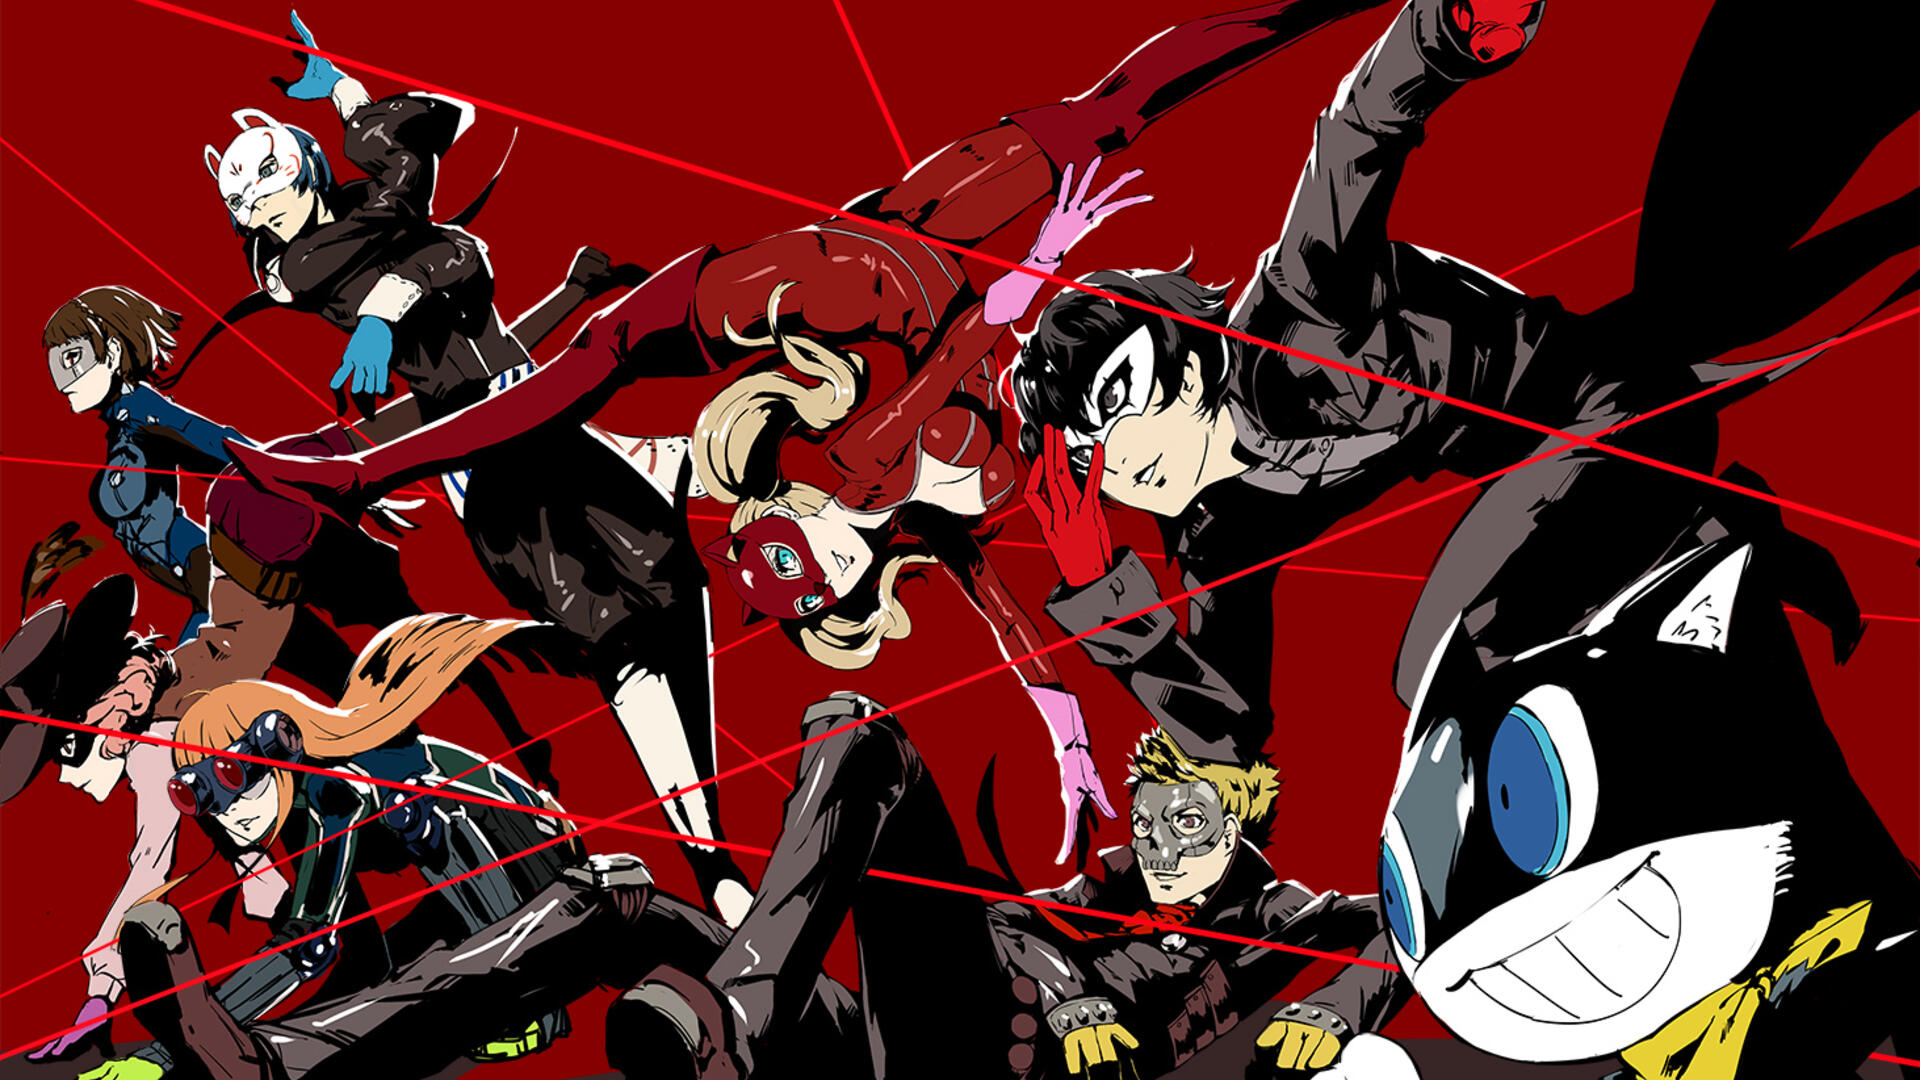 Persona 5 Guide - How to Get a Job and Earn Money